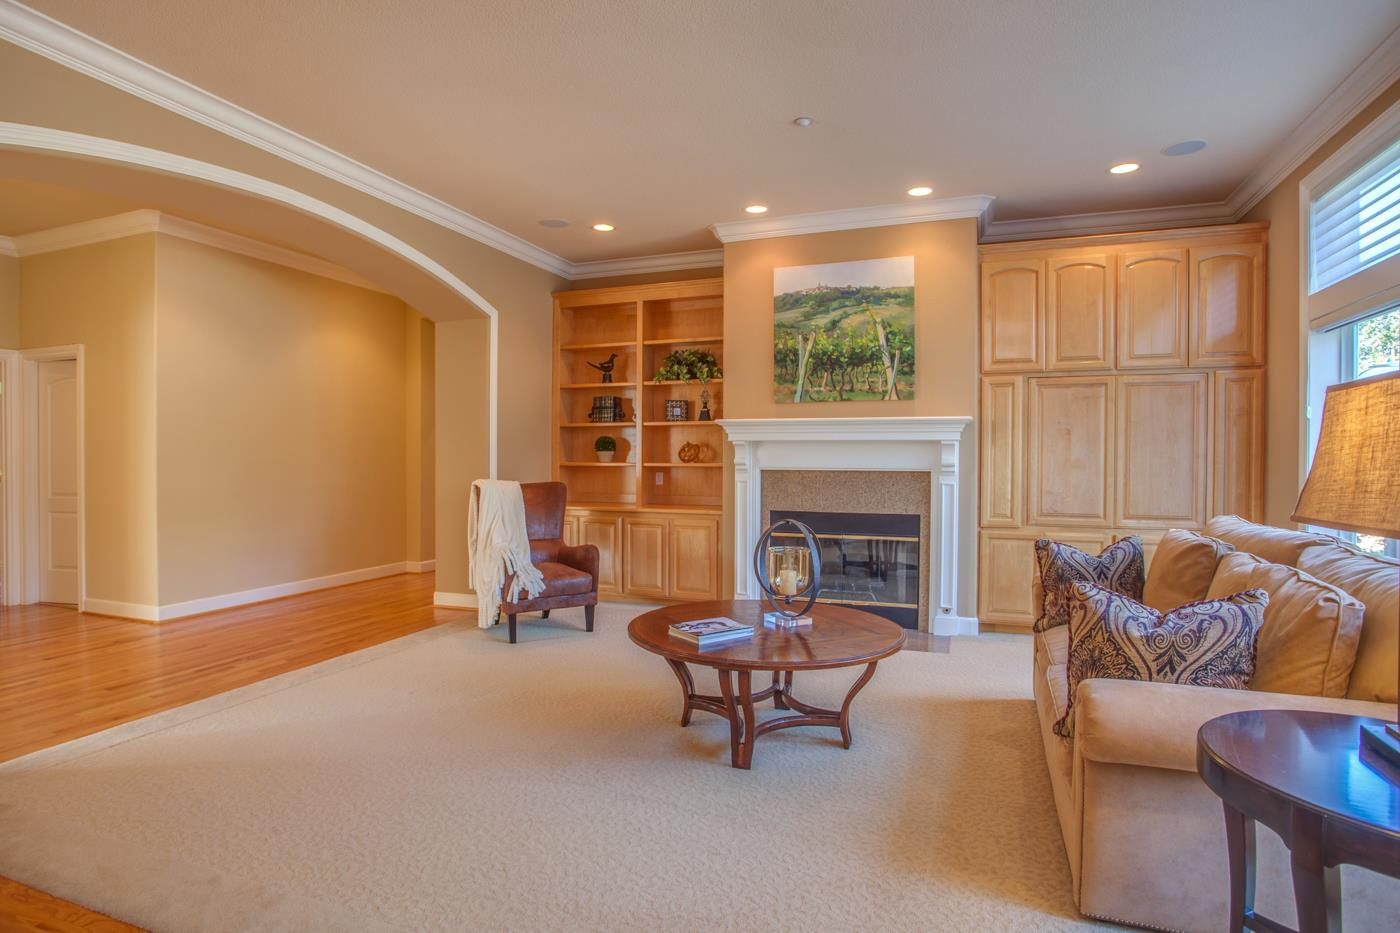 Additional photo for property listing at 14665 Secretariat Ct  MORGAN HILL, CALIFORNIA 95037